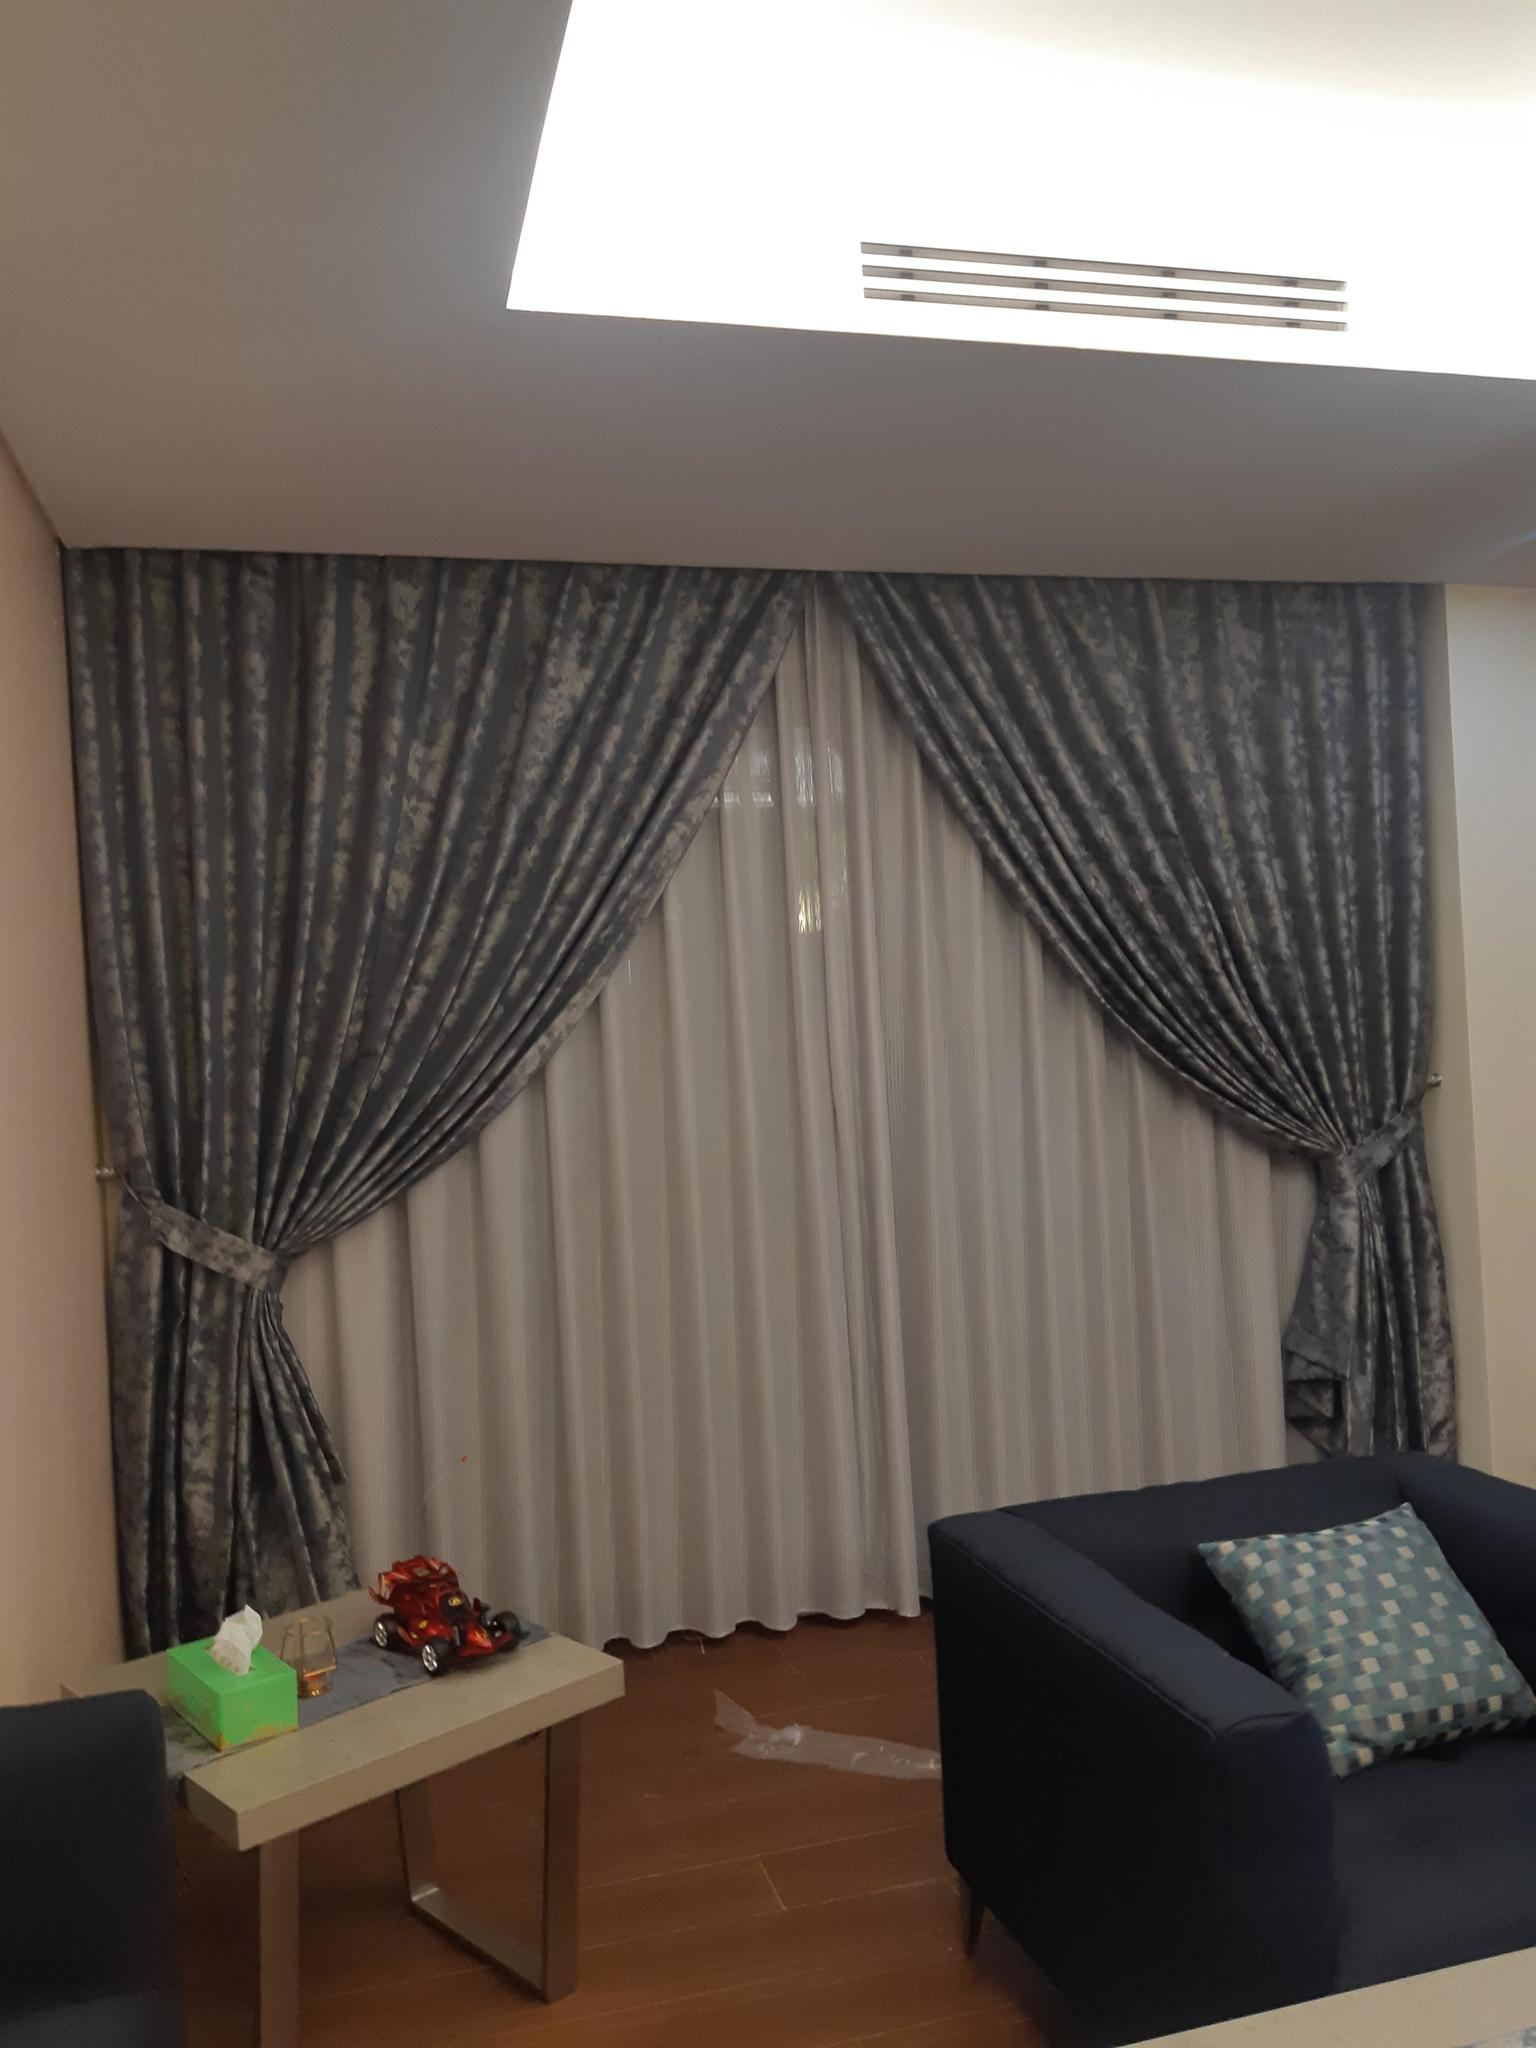 All Curtains,,, Wallpaper ,,, P.V.C for floor,,,,